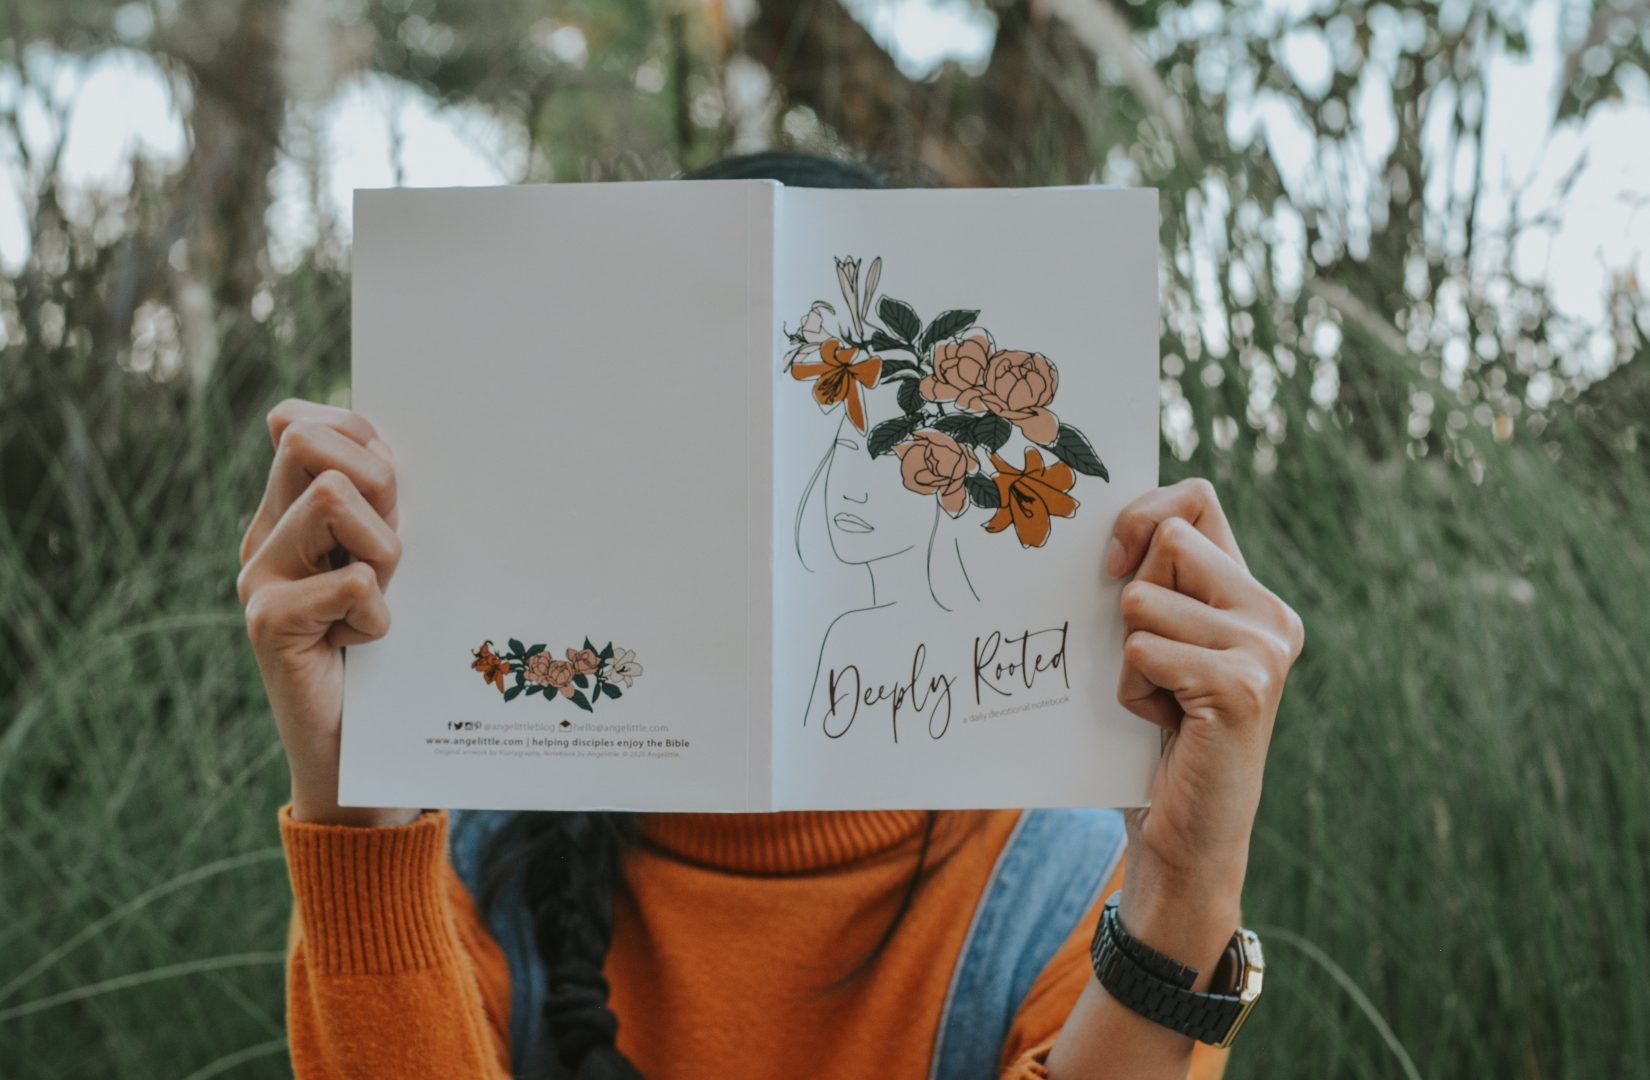 Deeply Rooted Devotional Notebook by Angelittle, Philippines